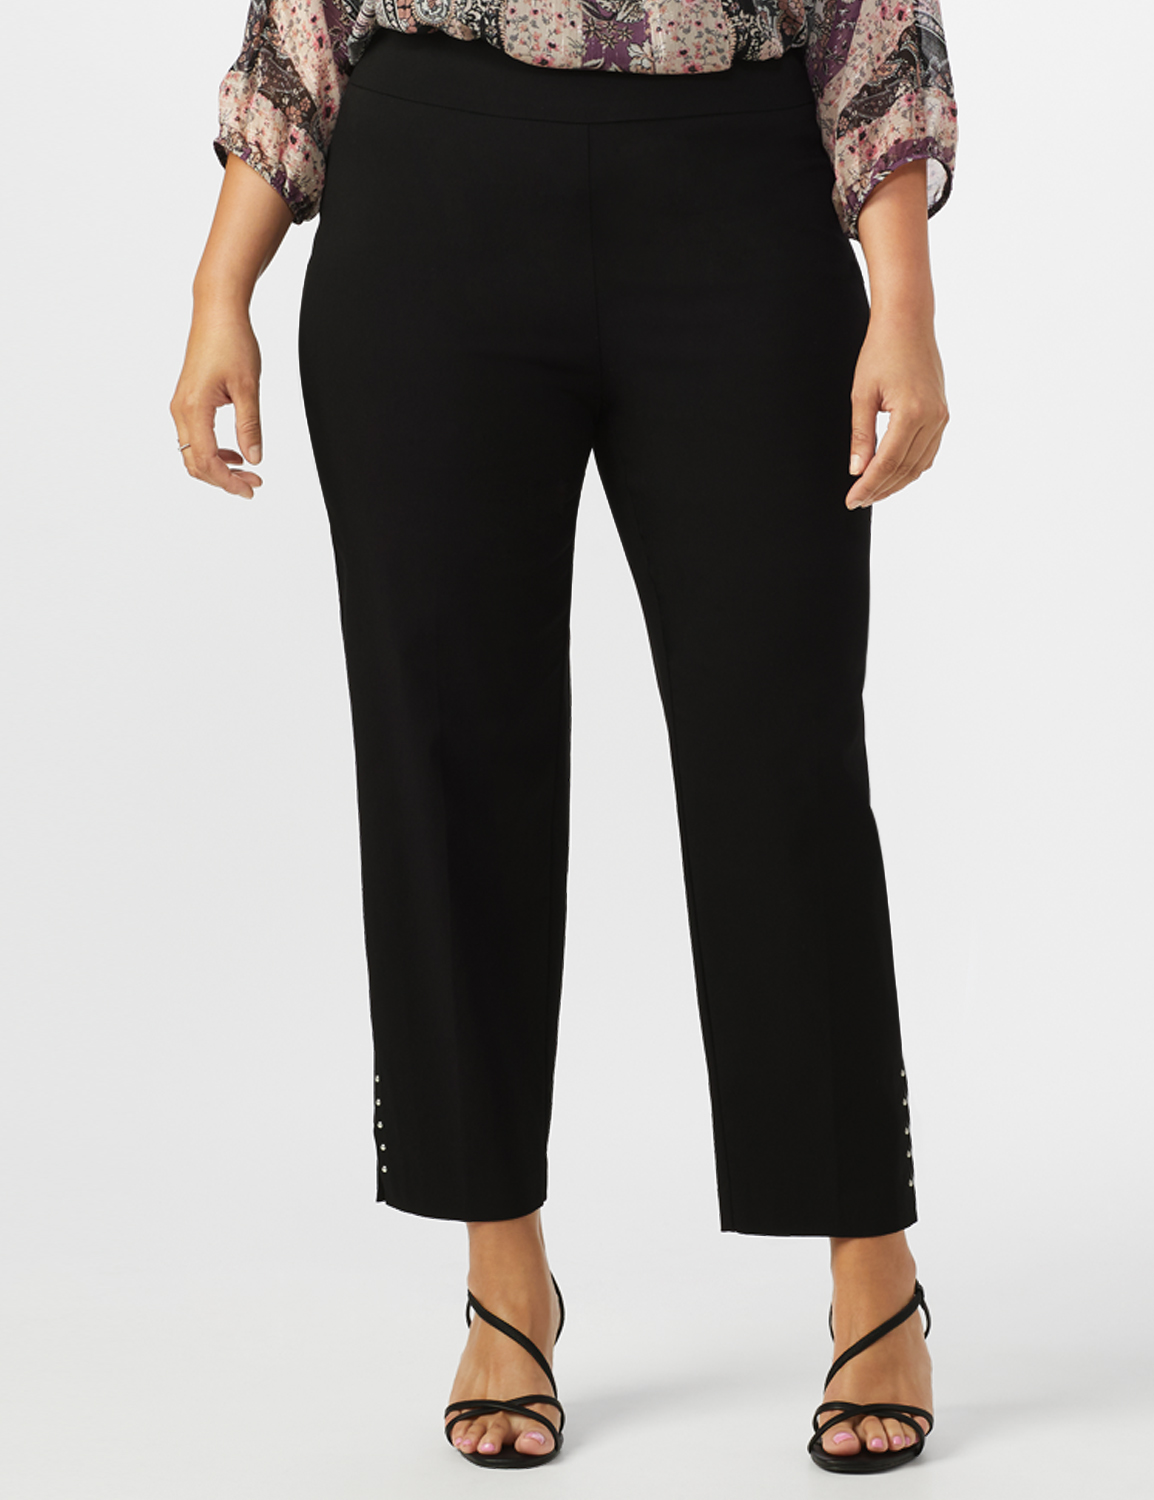 Roz & Ali Solid Superstretch Tummy Panel Pull On Ankle Pants With Rivet Trim Bottom - Plus -Black - Front